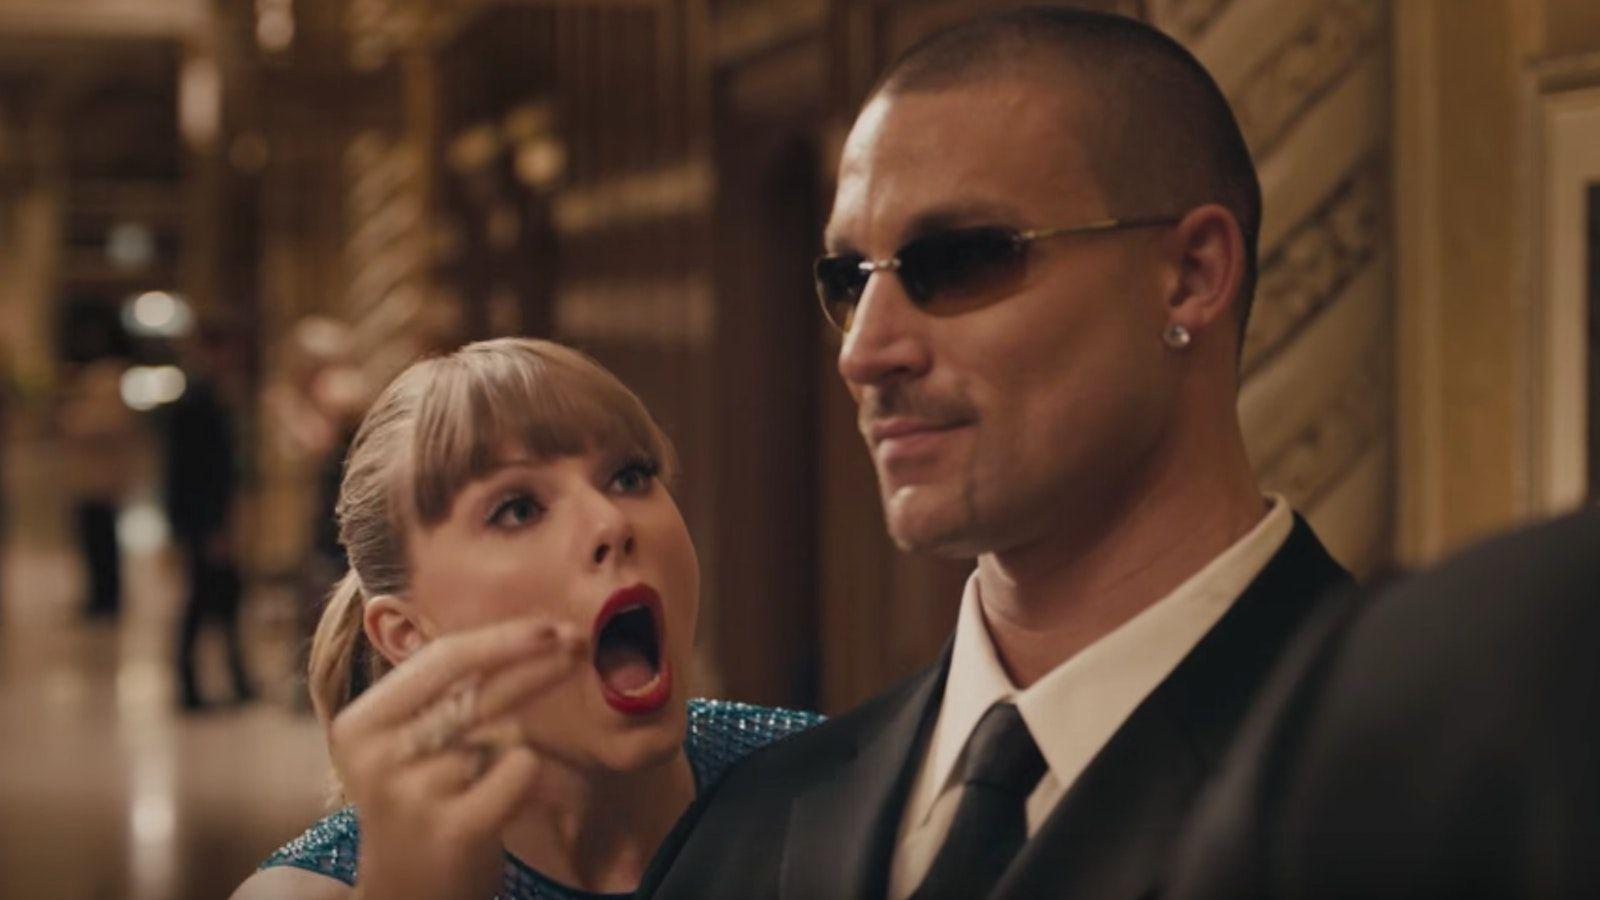 Taylor Swift 'Delicate' Music Video: The Science of Feeling ...